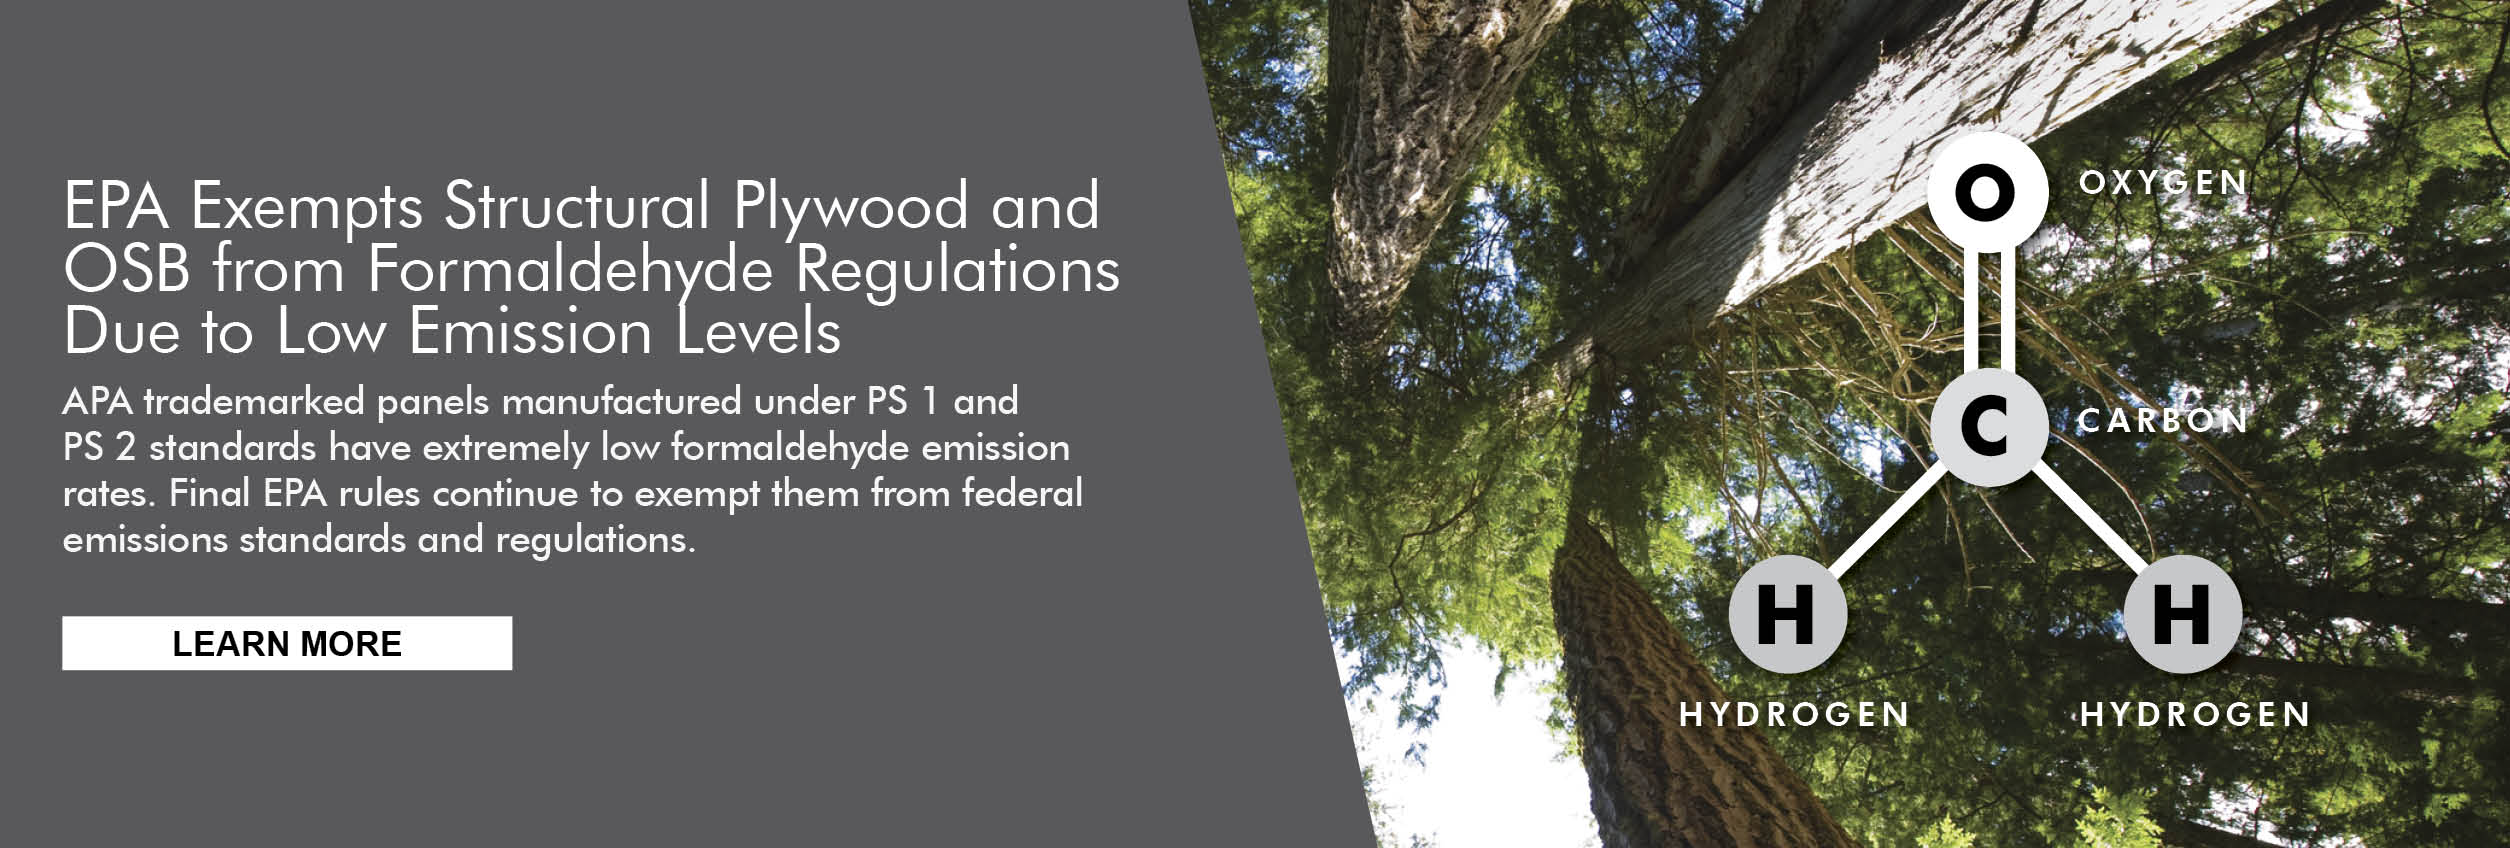 Structural plywood and oriented strand board (OSB) are exempt from EPA regs